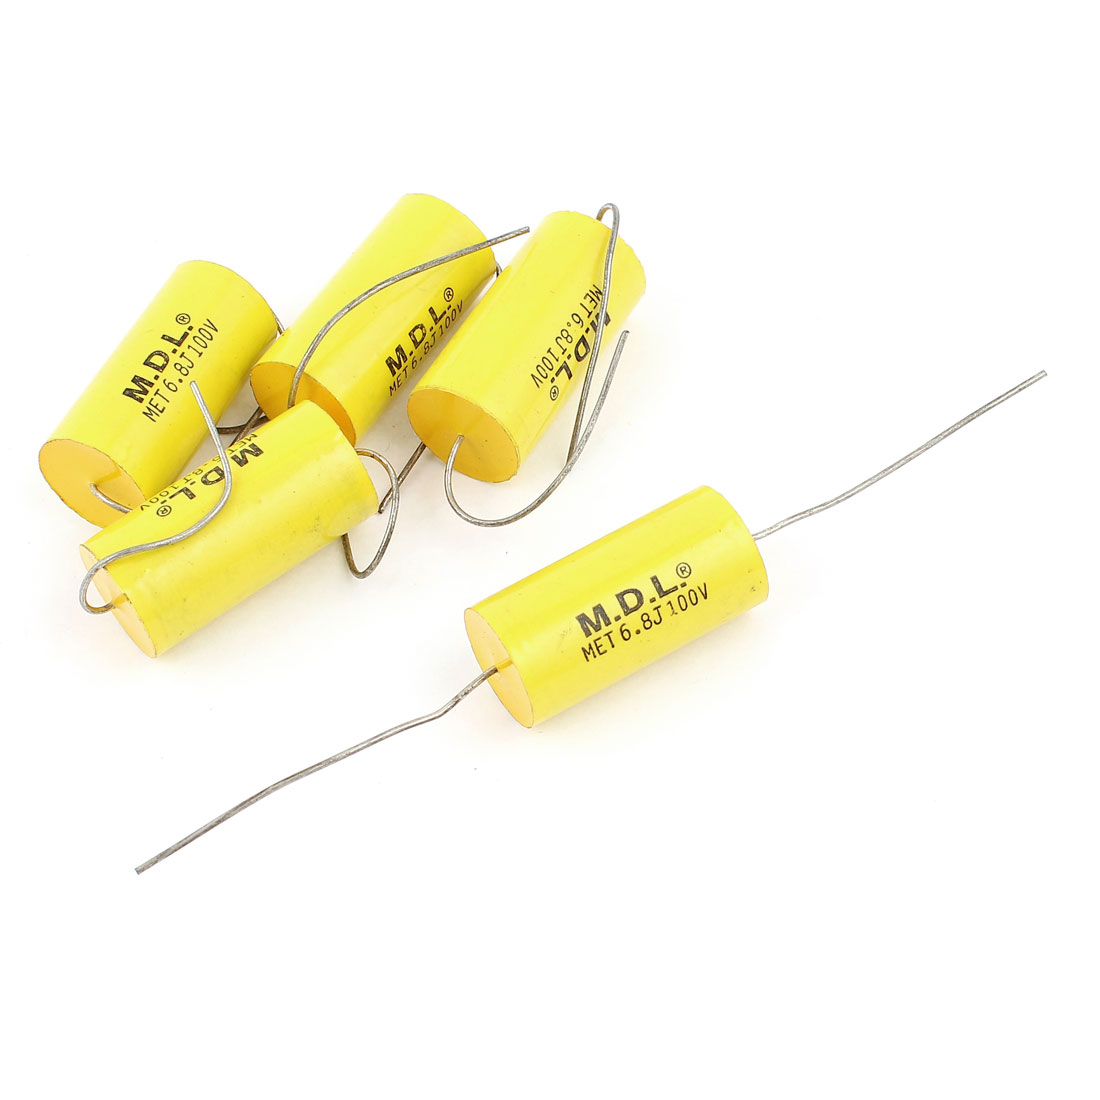 5 Pcs AC100V 5% 6.8uf Capacitance Axial Lead Through Hole Mount Metallized Film Capacitor Yellow